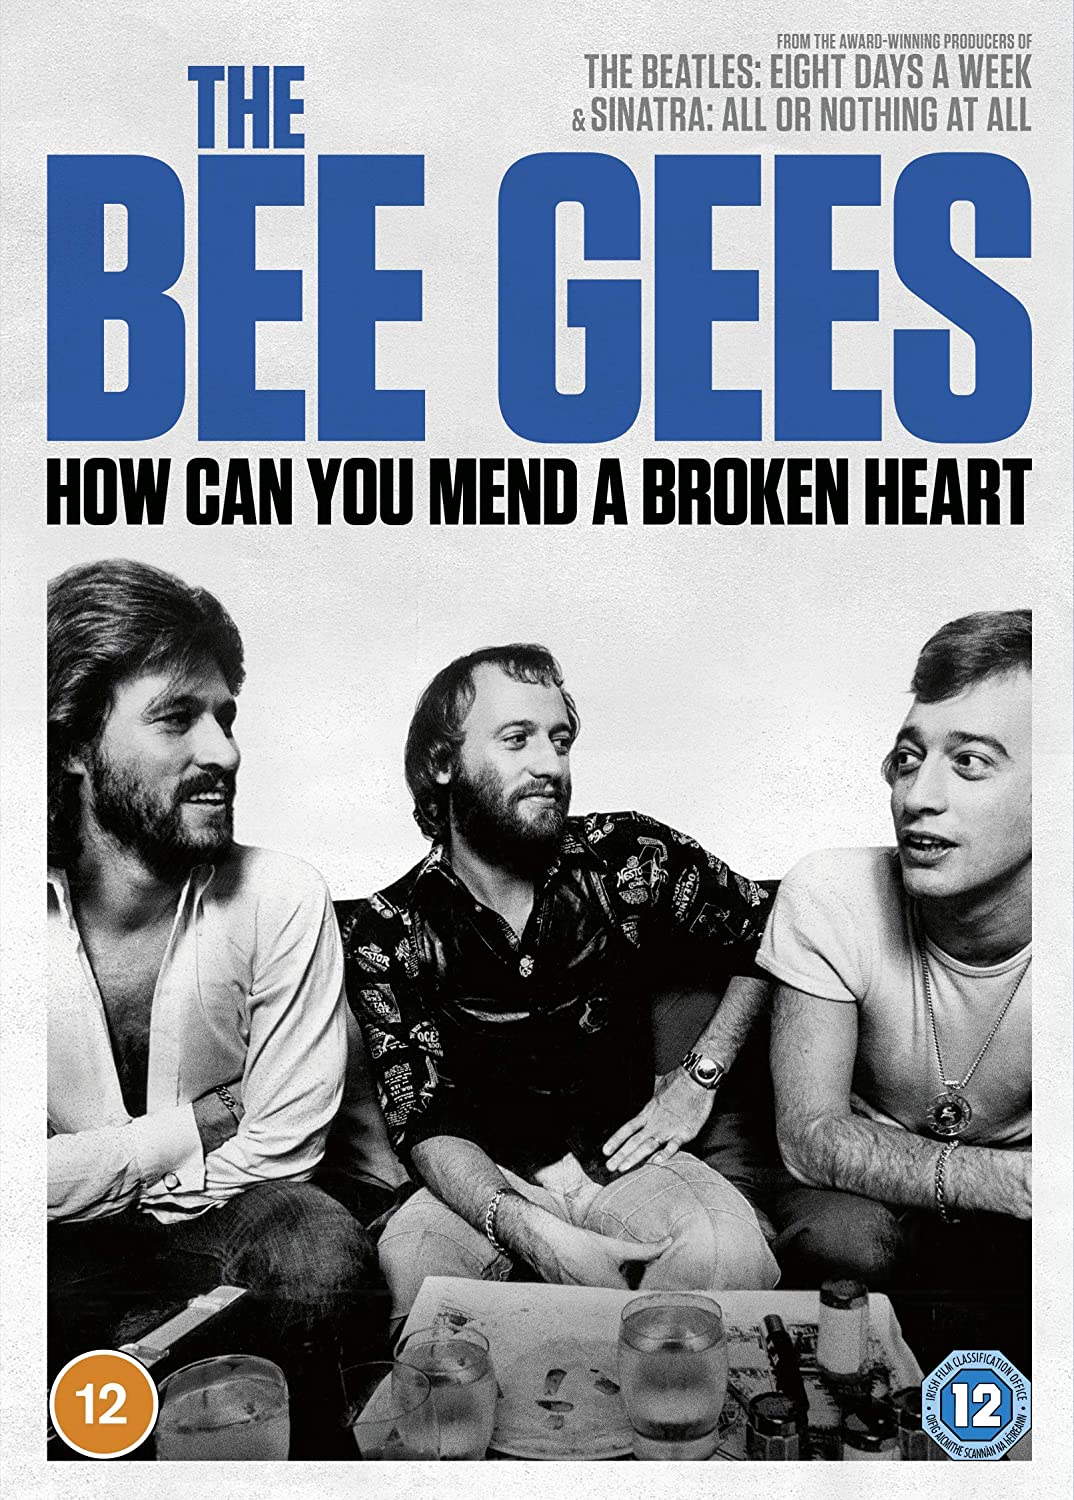 The Bee Gees - How Can You Mend a Broken Heart? (2020) [DVD]